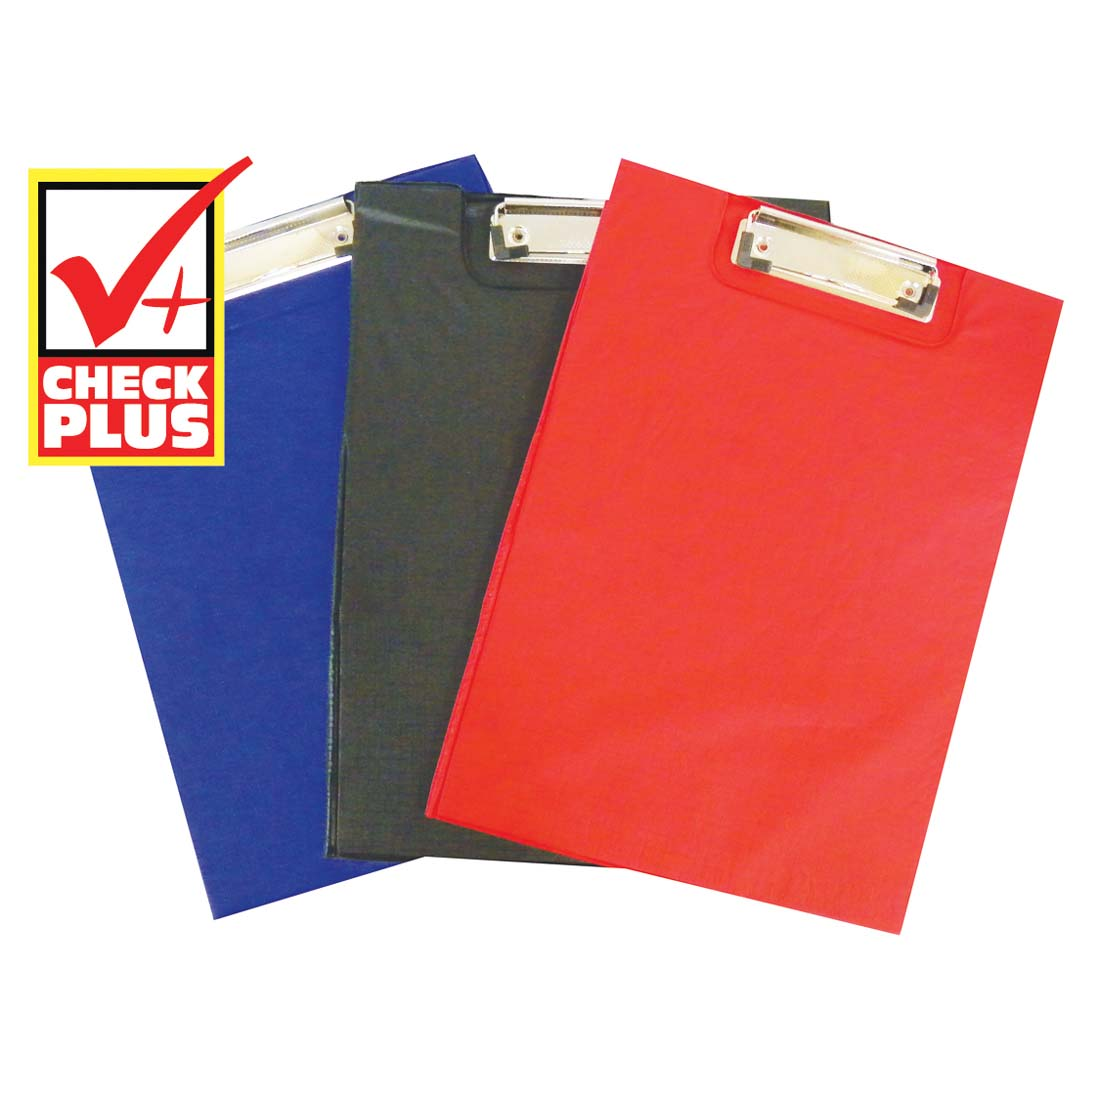 View PVC CLIPBOARD 9 X 12 INCH ASSORTED COLORS